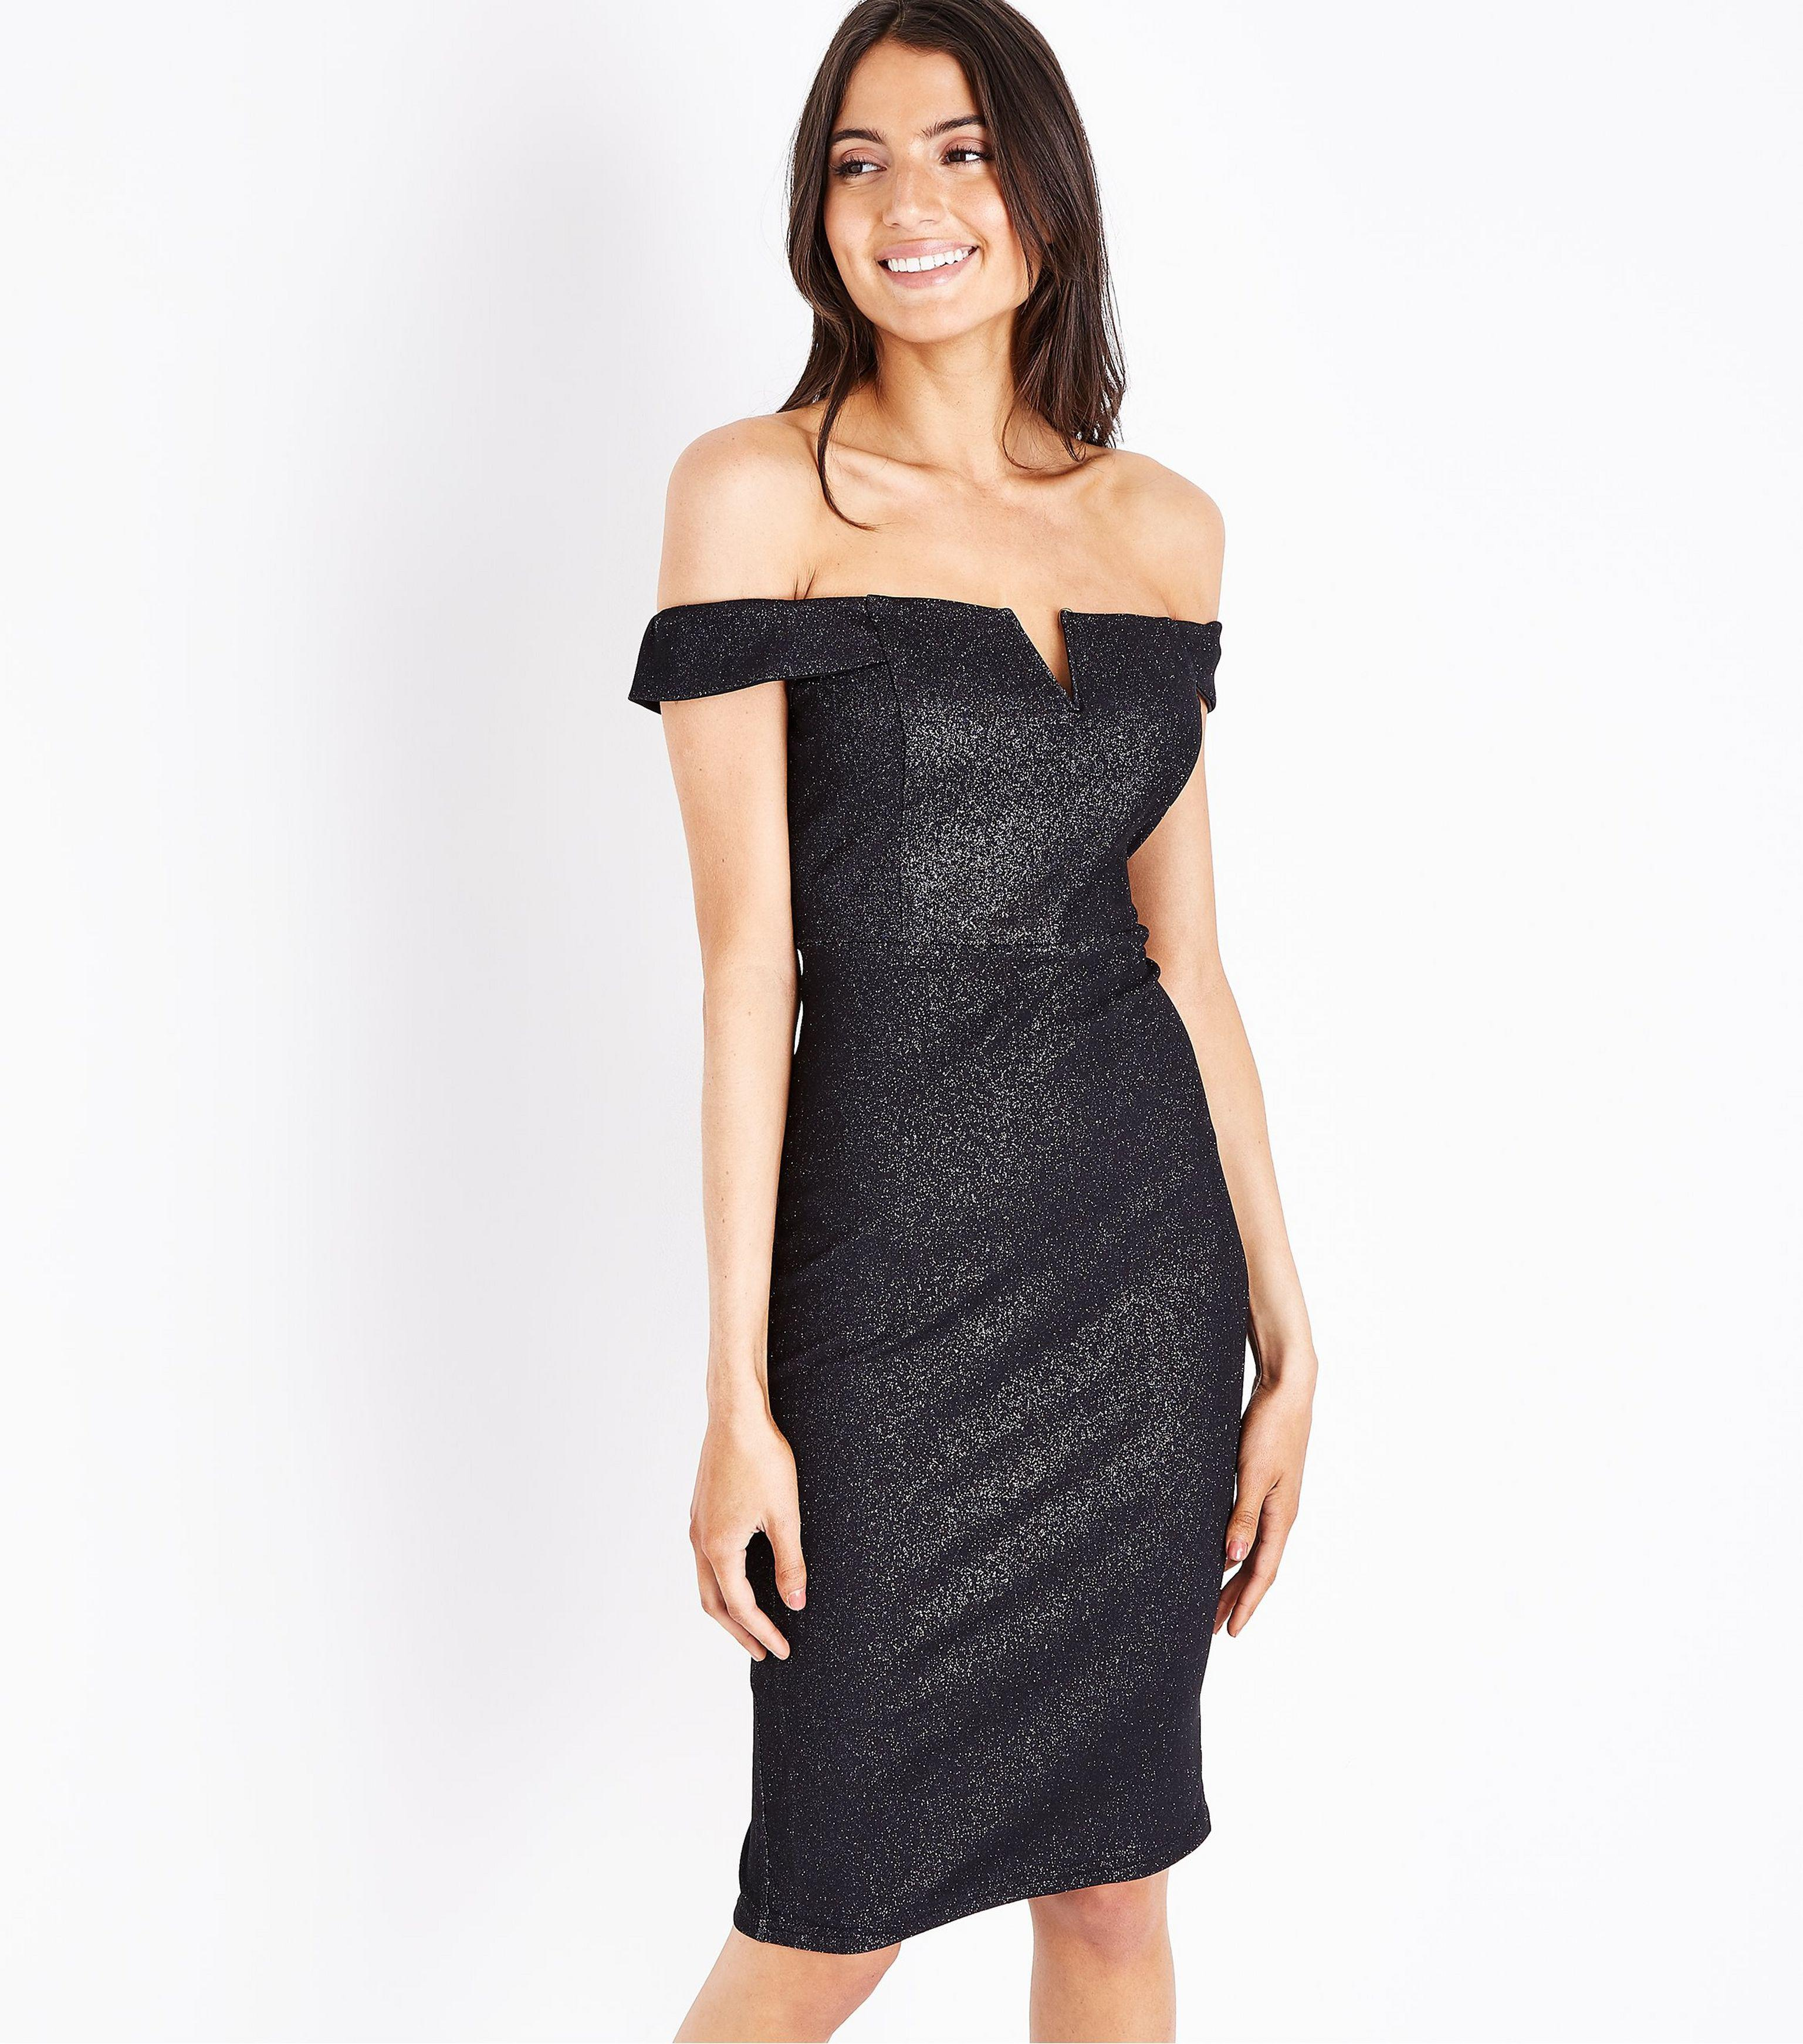 1f01bd82d8e7 AX Paris Black Glitter Bardot Neck Midi Dress in Black - Lyst